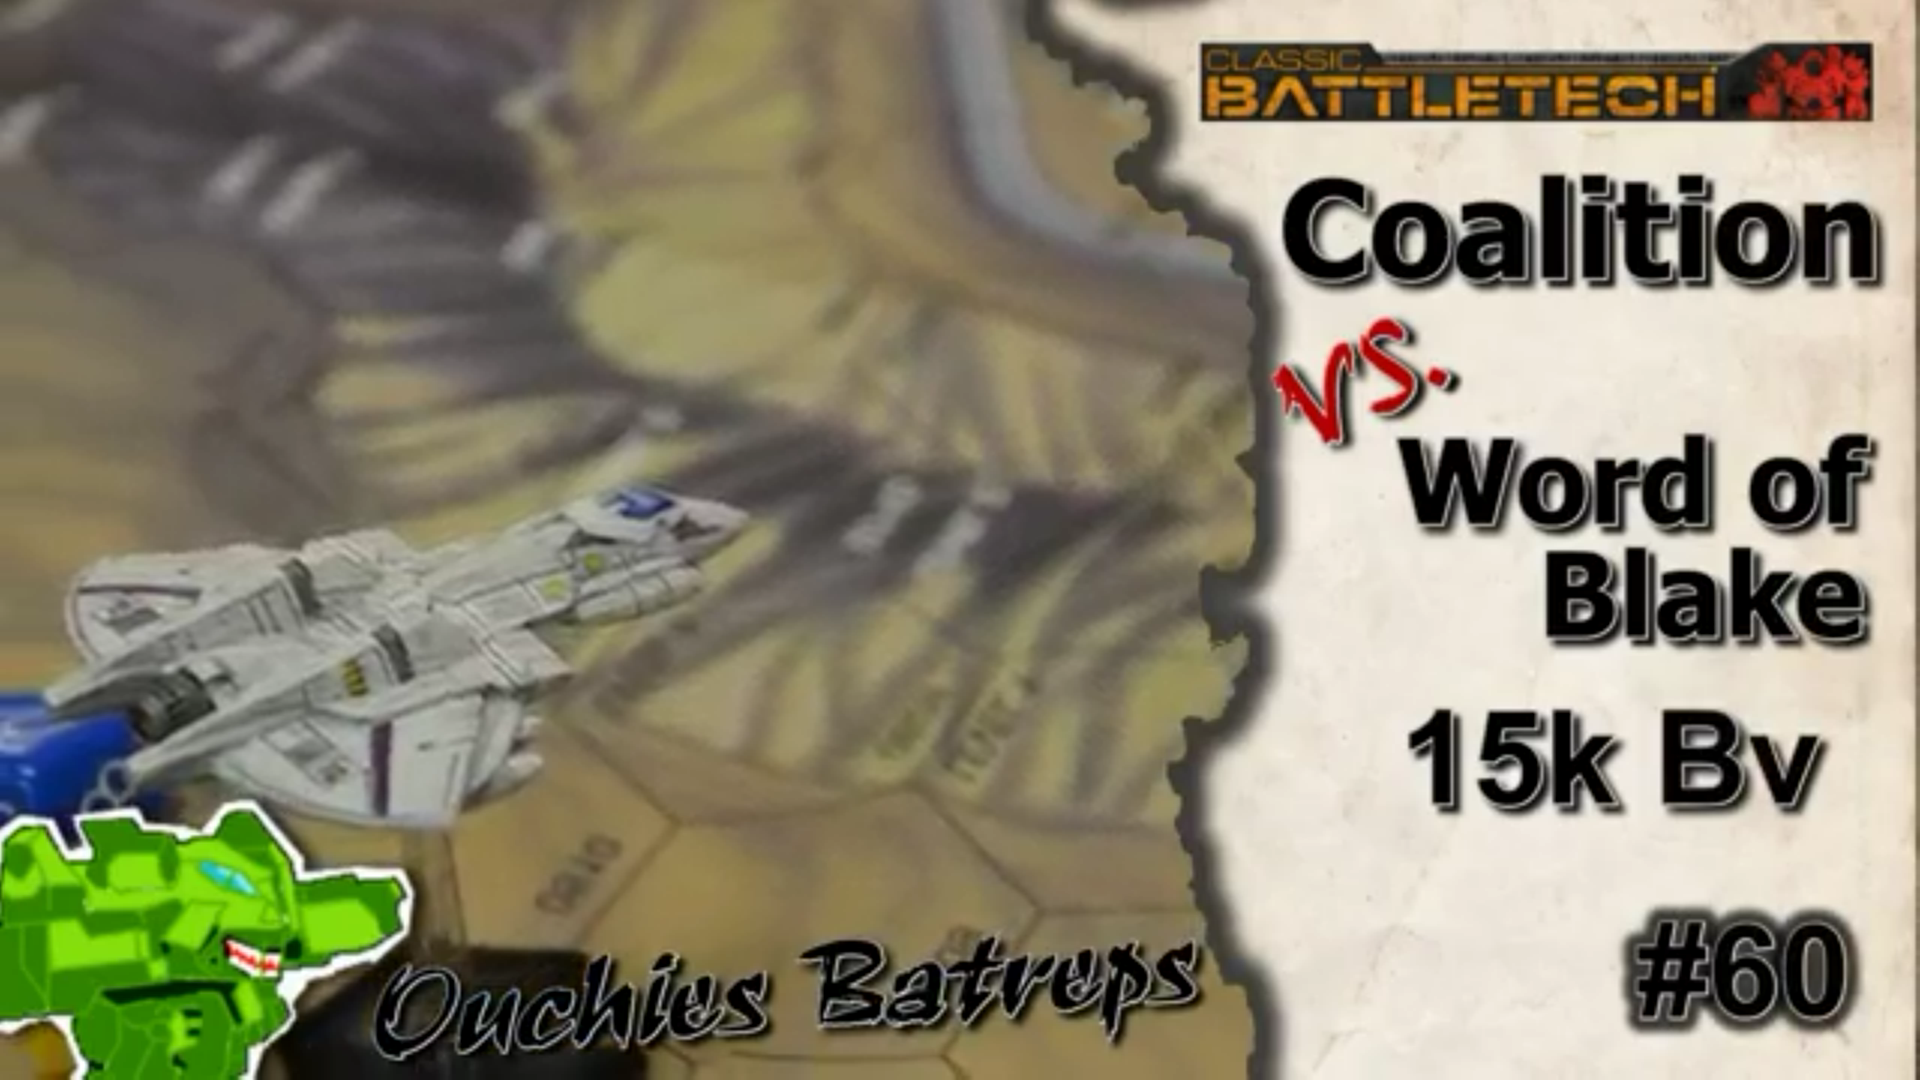 #60 Coalition vs. WoB